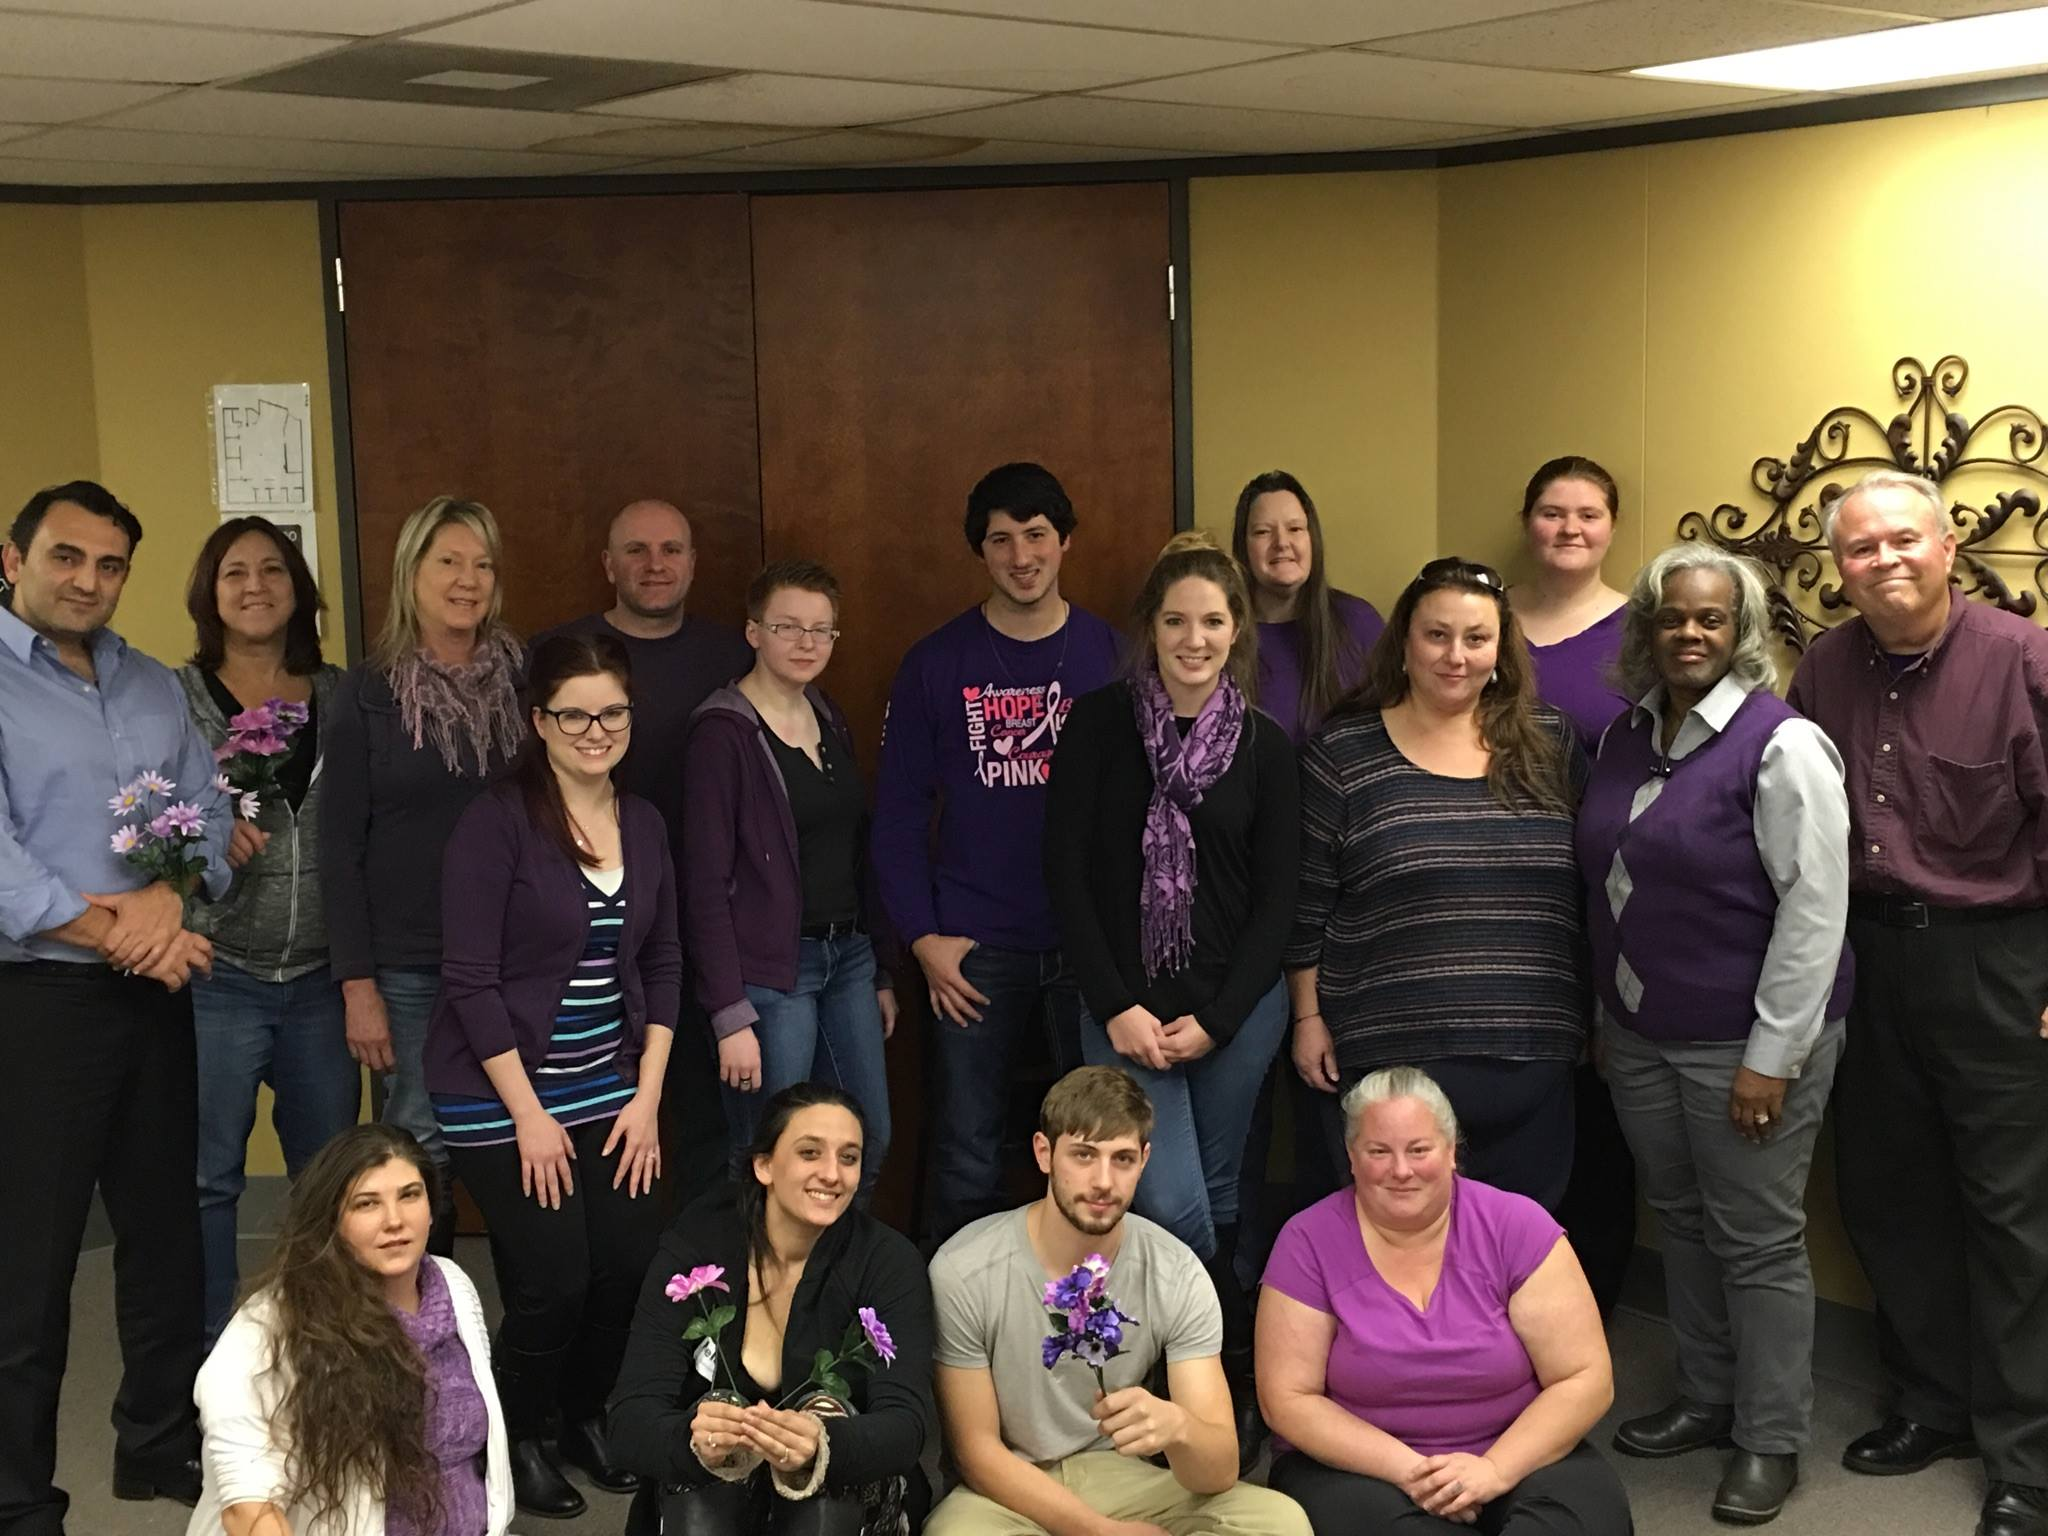 Our Team assembled for epilepsy awareness!